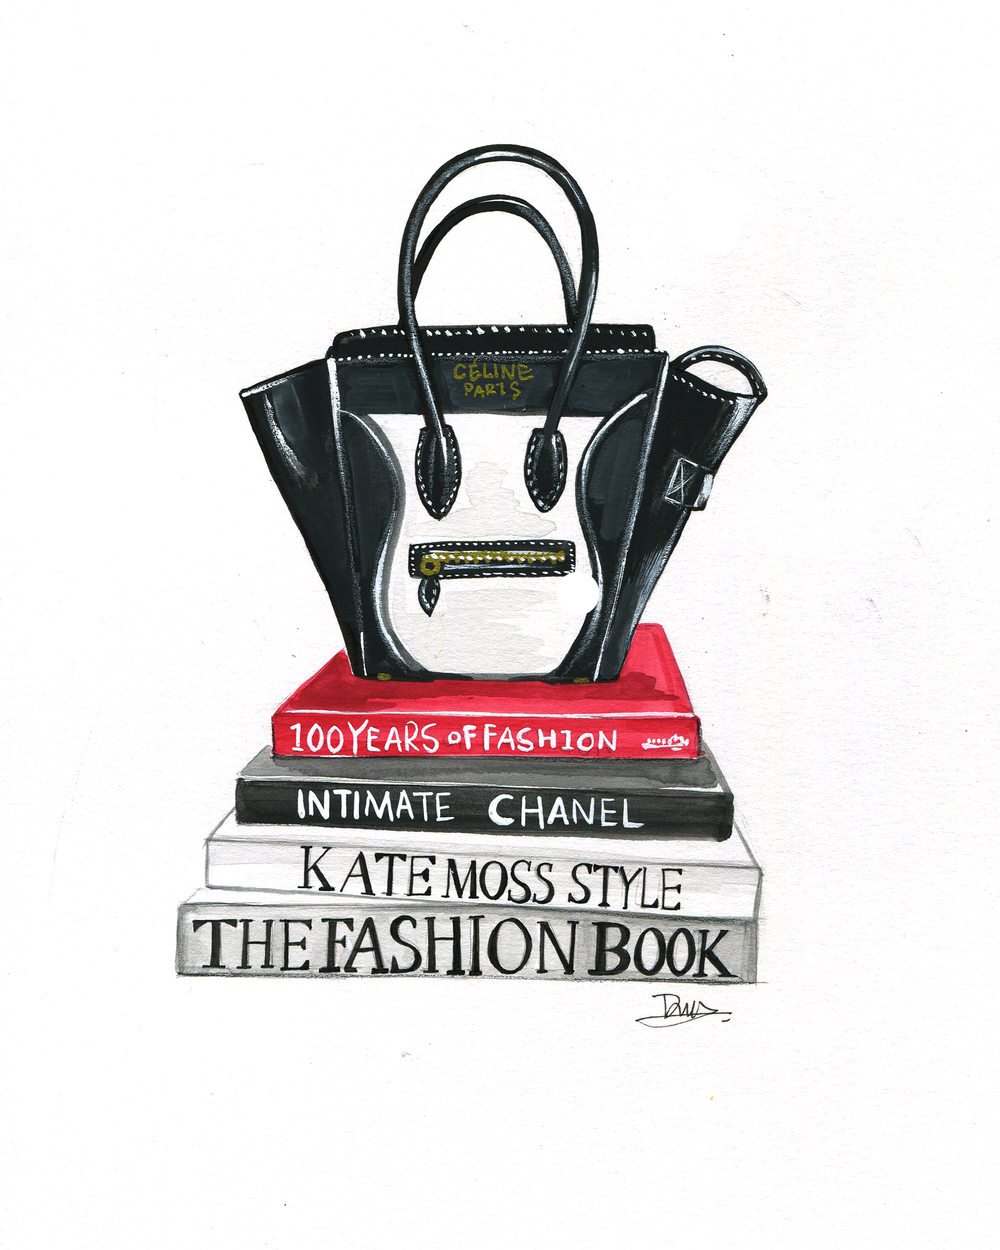 Celine bag illustration by fashion artist Rongrong DeVoe